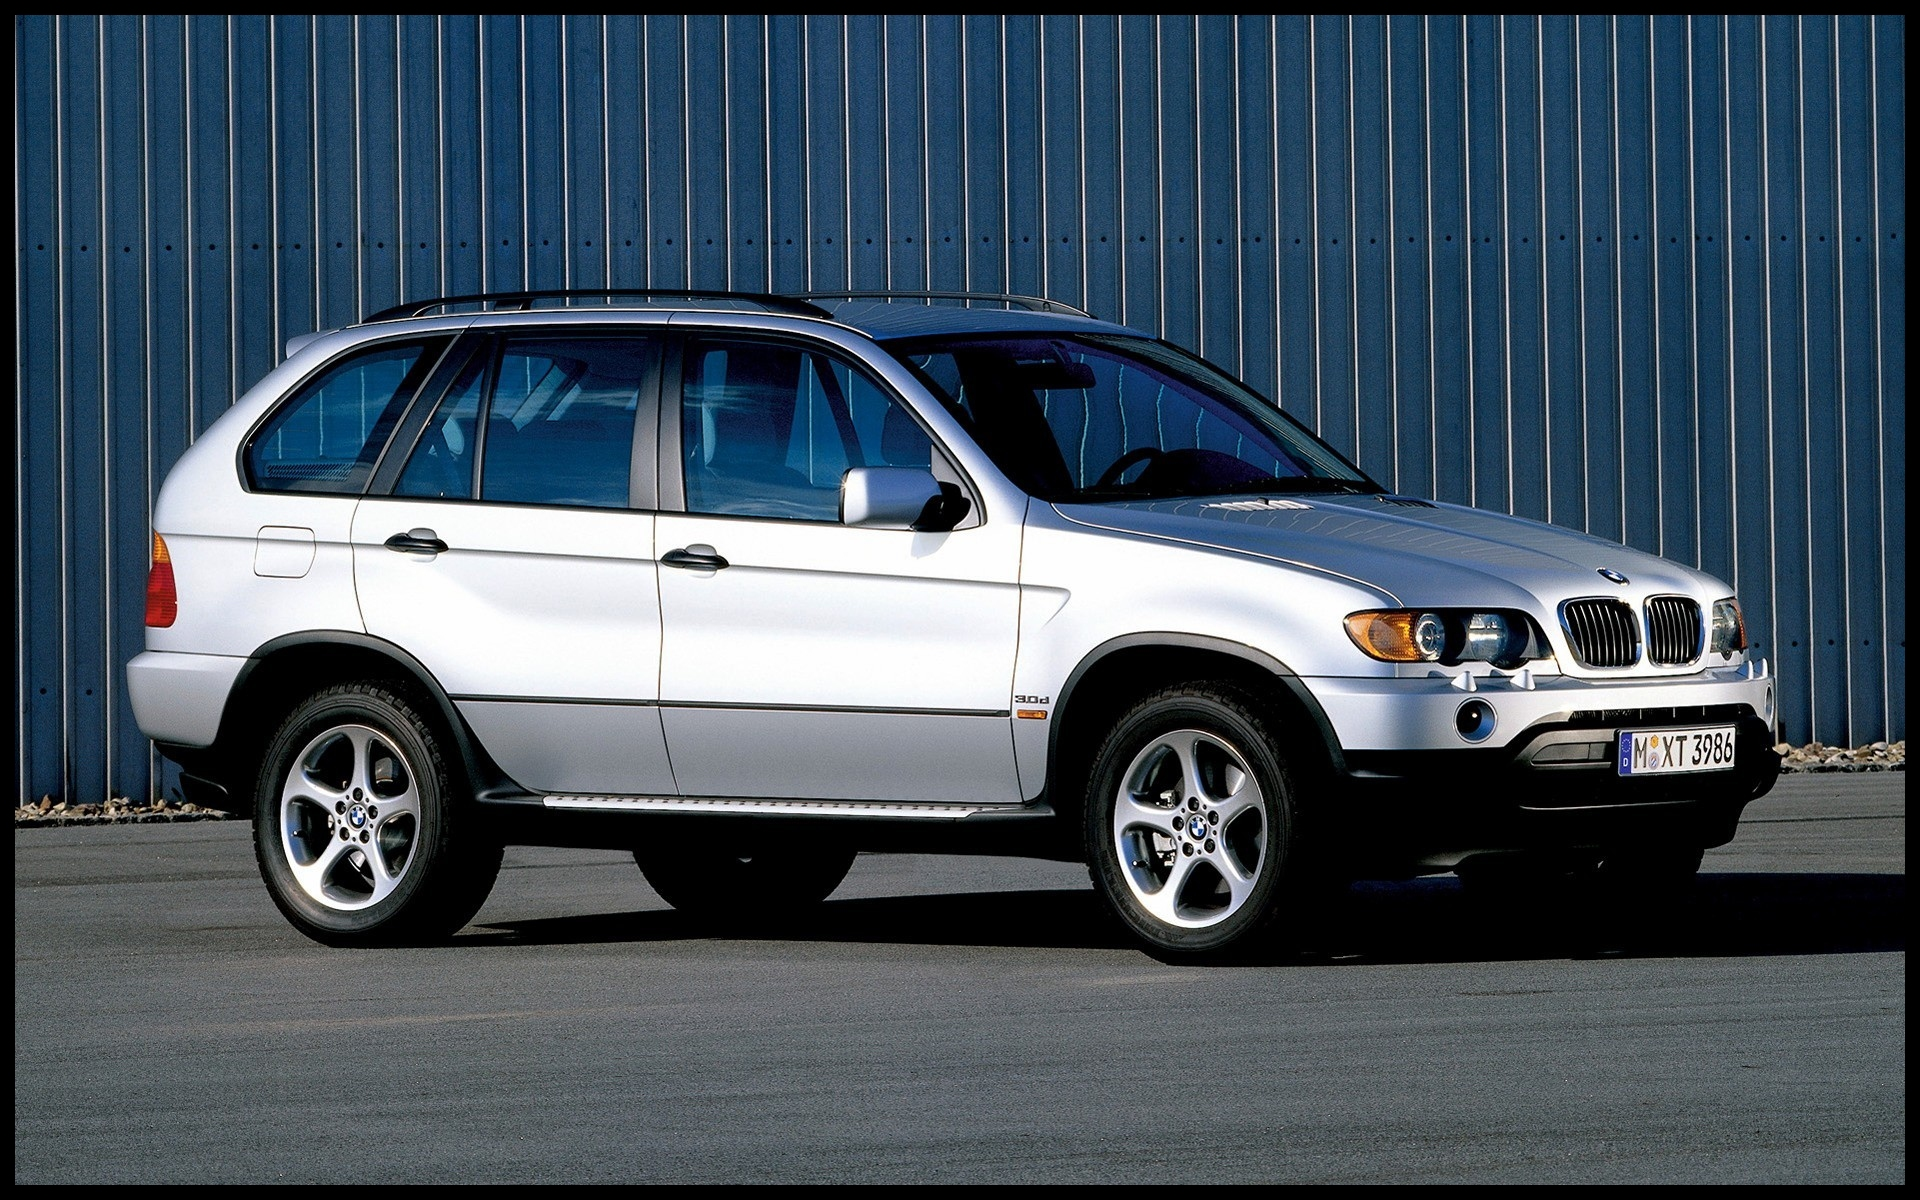 Land Rover Wallpapers Elegant Bmw X5 3 0d 2001 Wallpapers and Hd Car